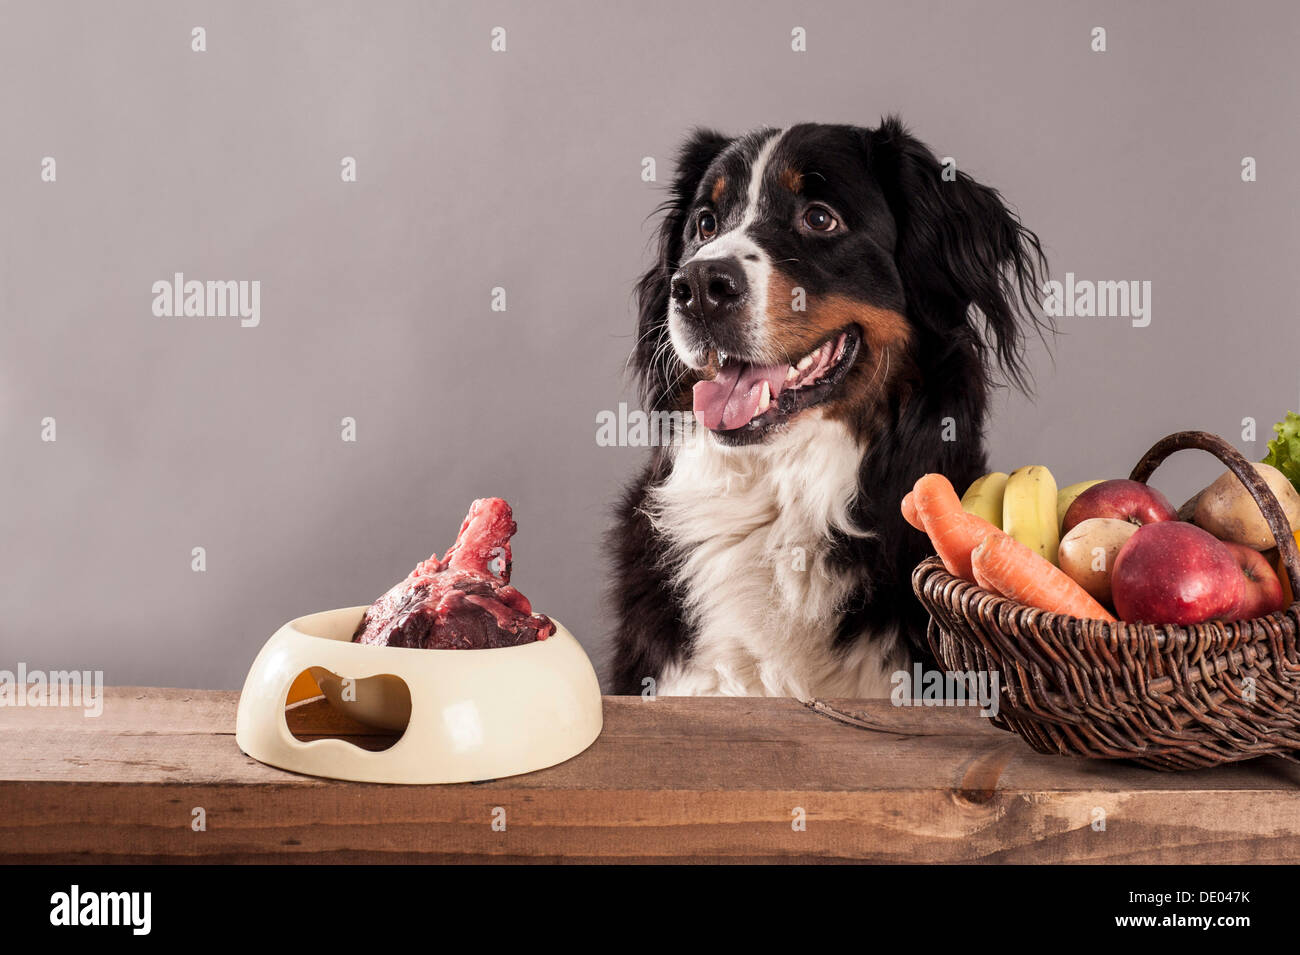 Bernese Mountain Dog Sitting Next To A Bowl Of Raw Meat And